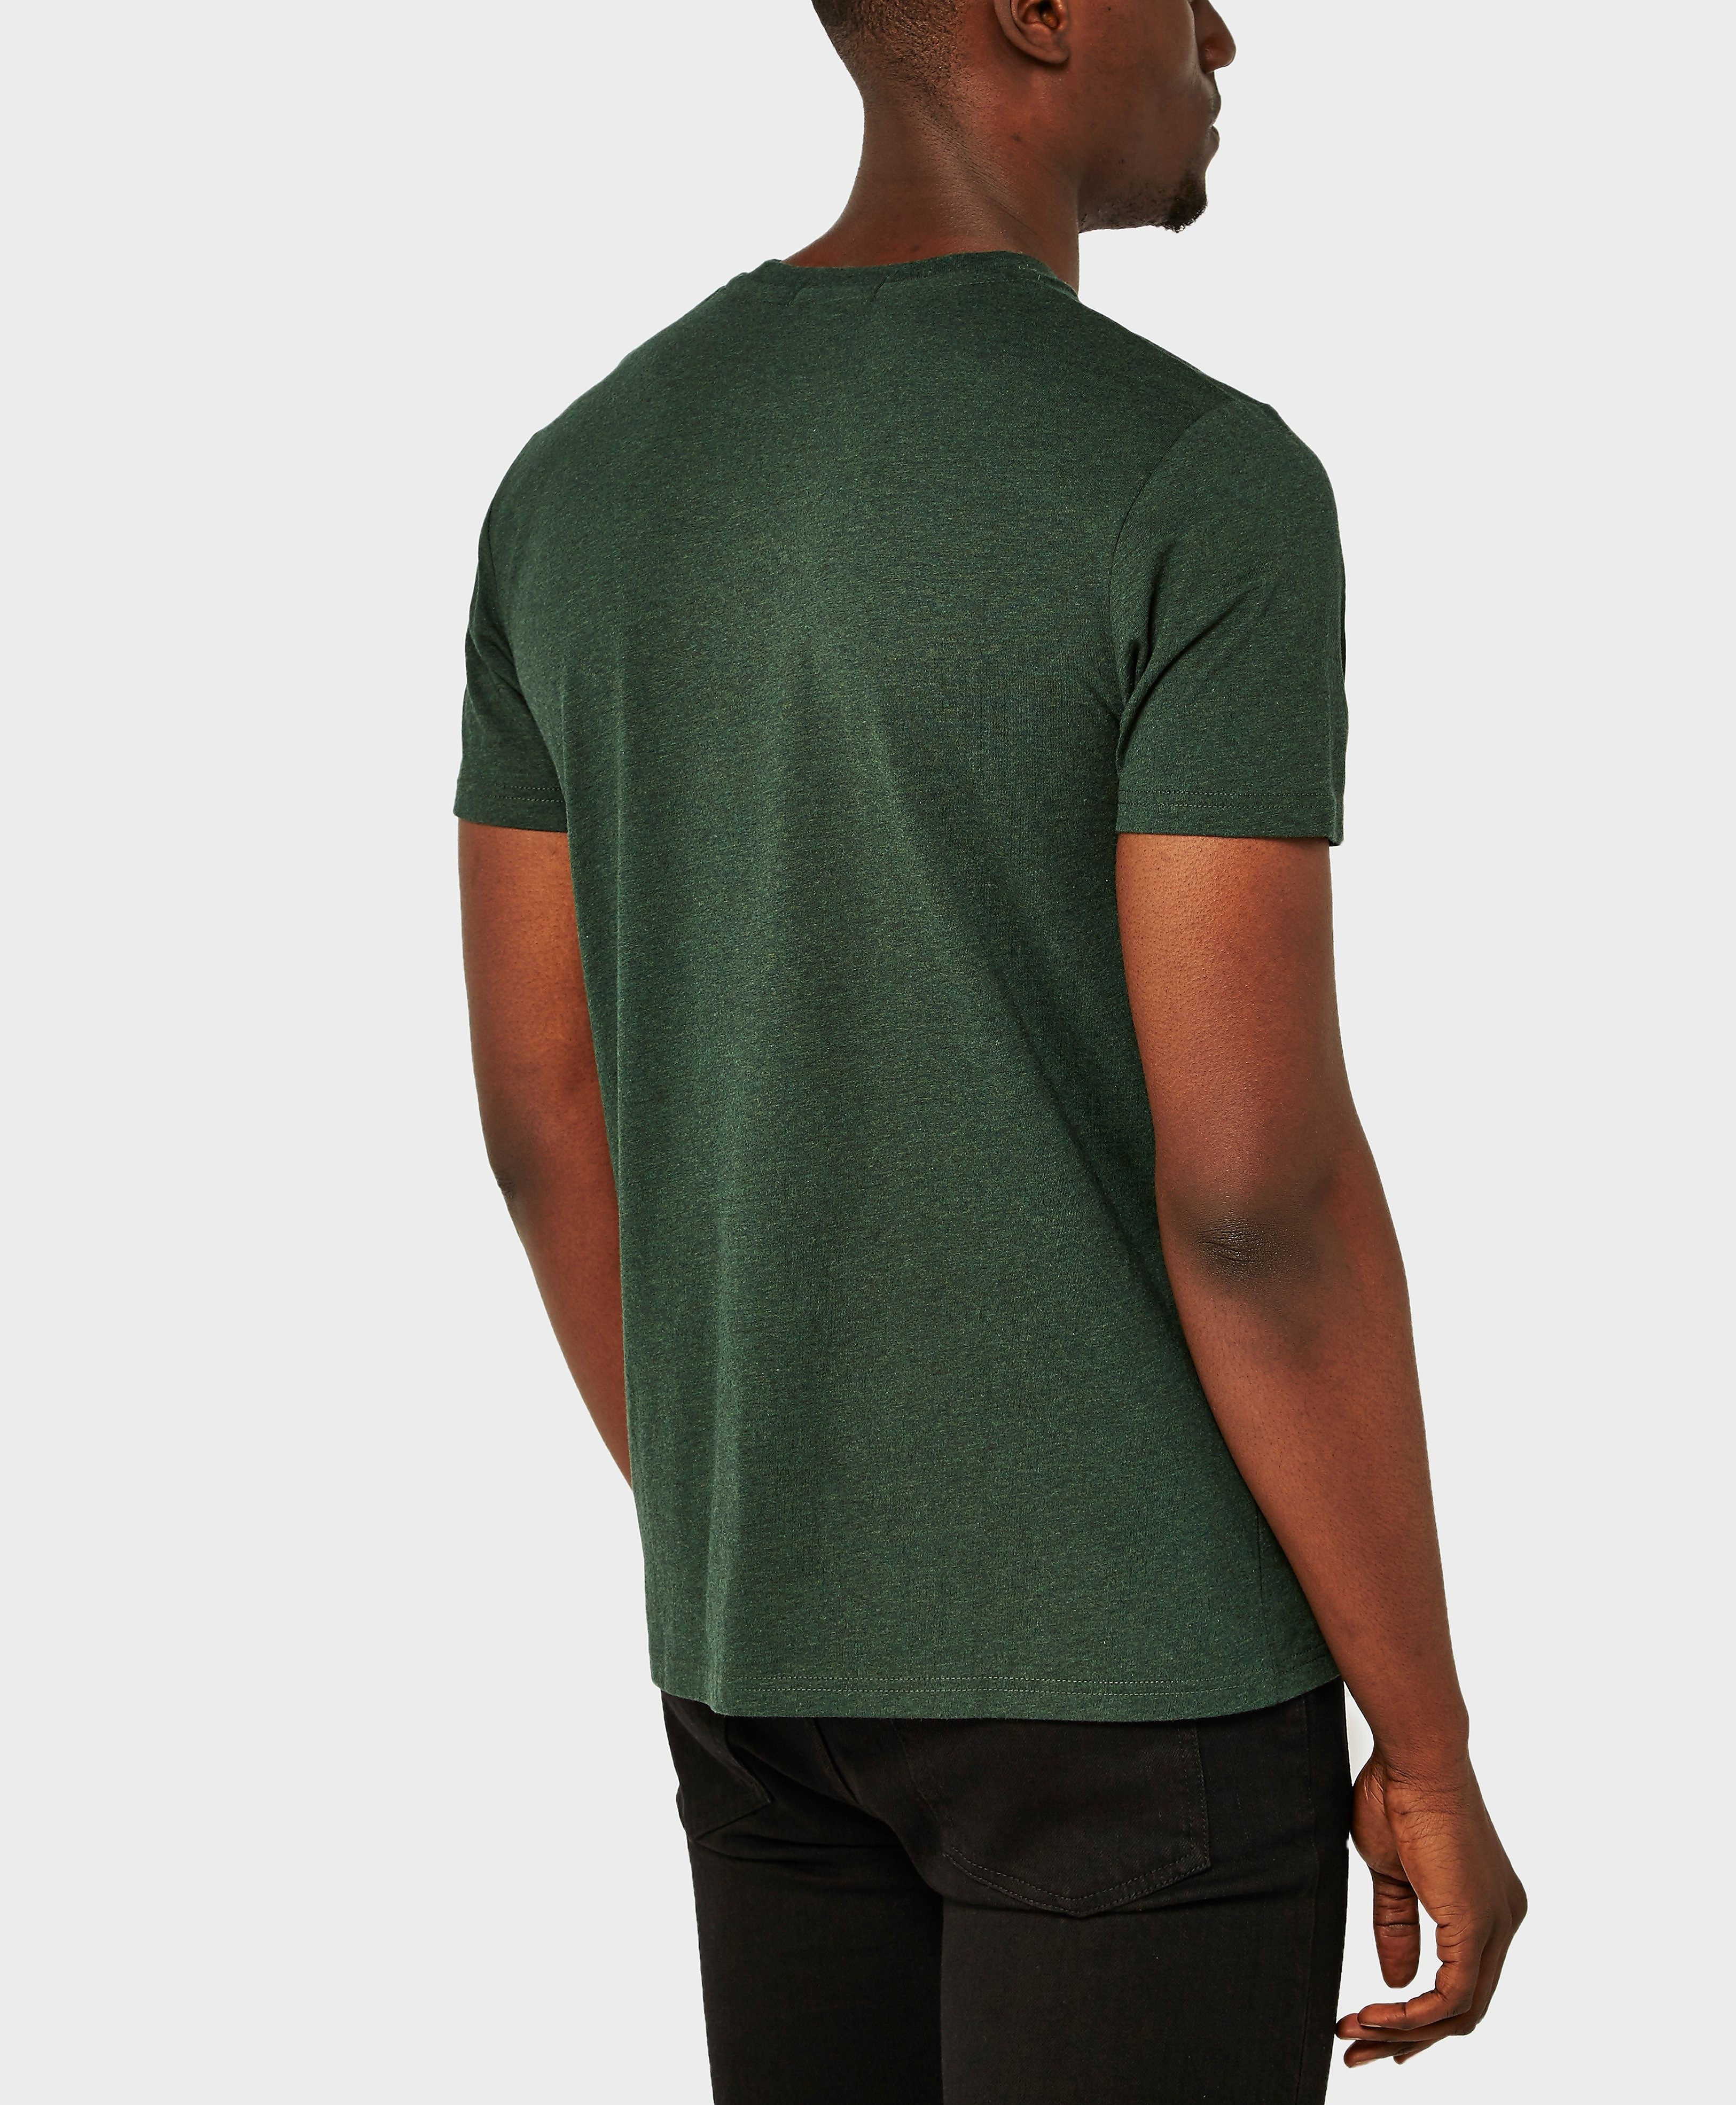 Fred Perry Olive T-Shirt - Exclusive